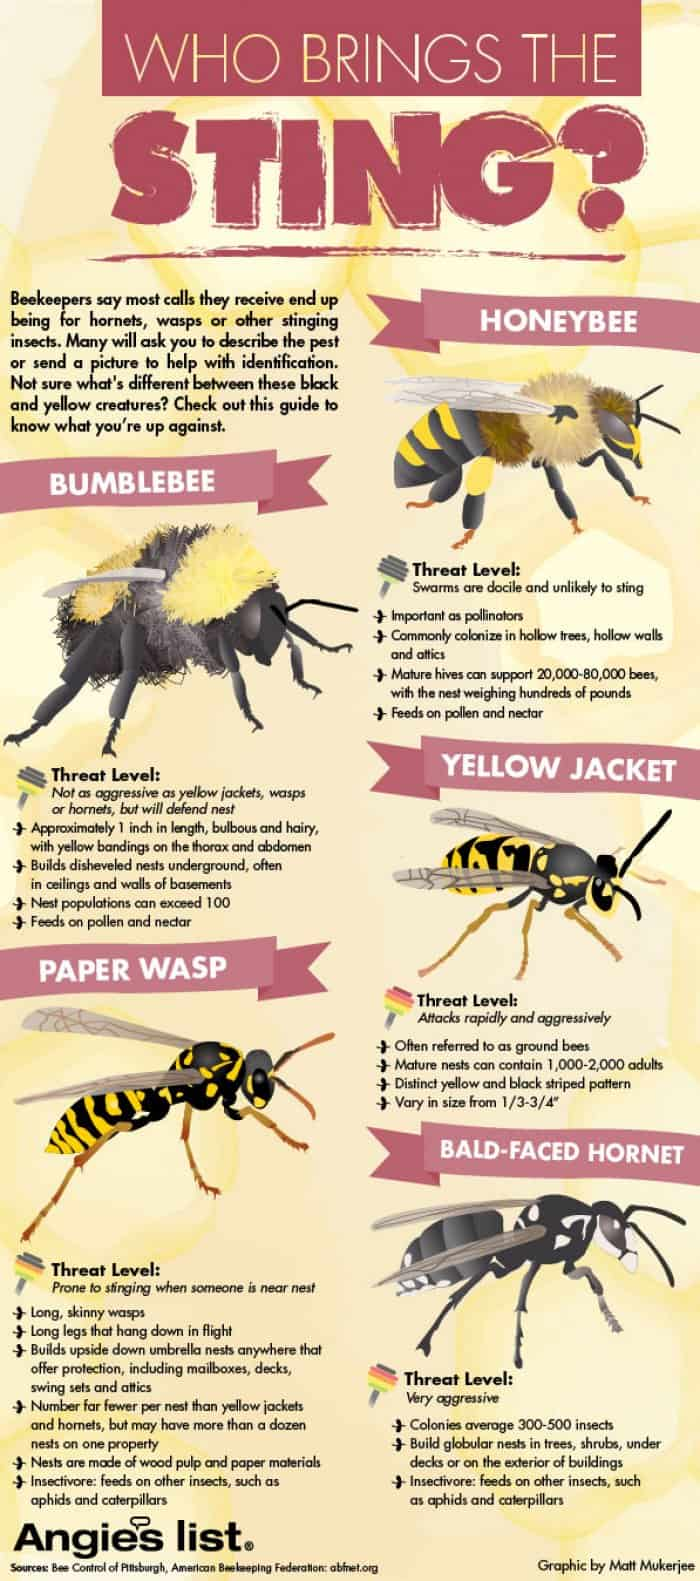 What Is The Difference Between A Yellow Jacket And A Wasp Bees vs. Wasps:...